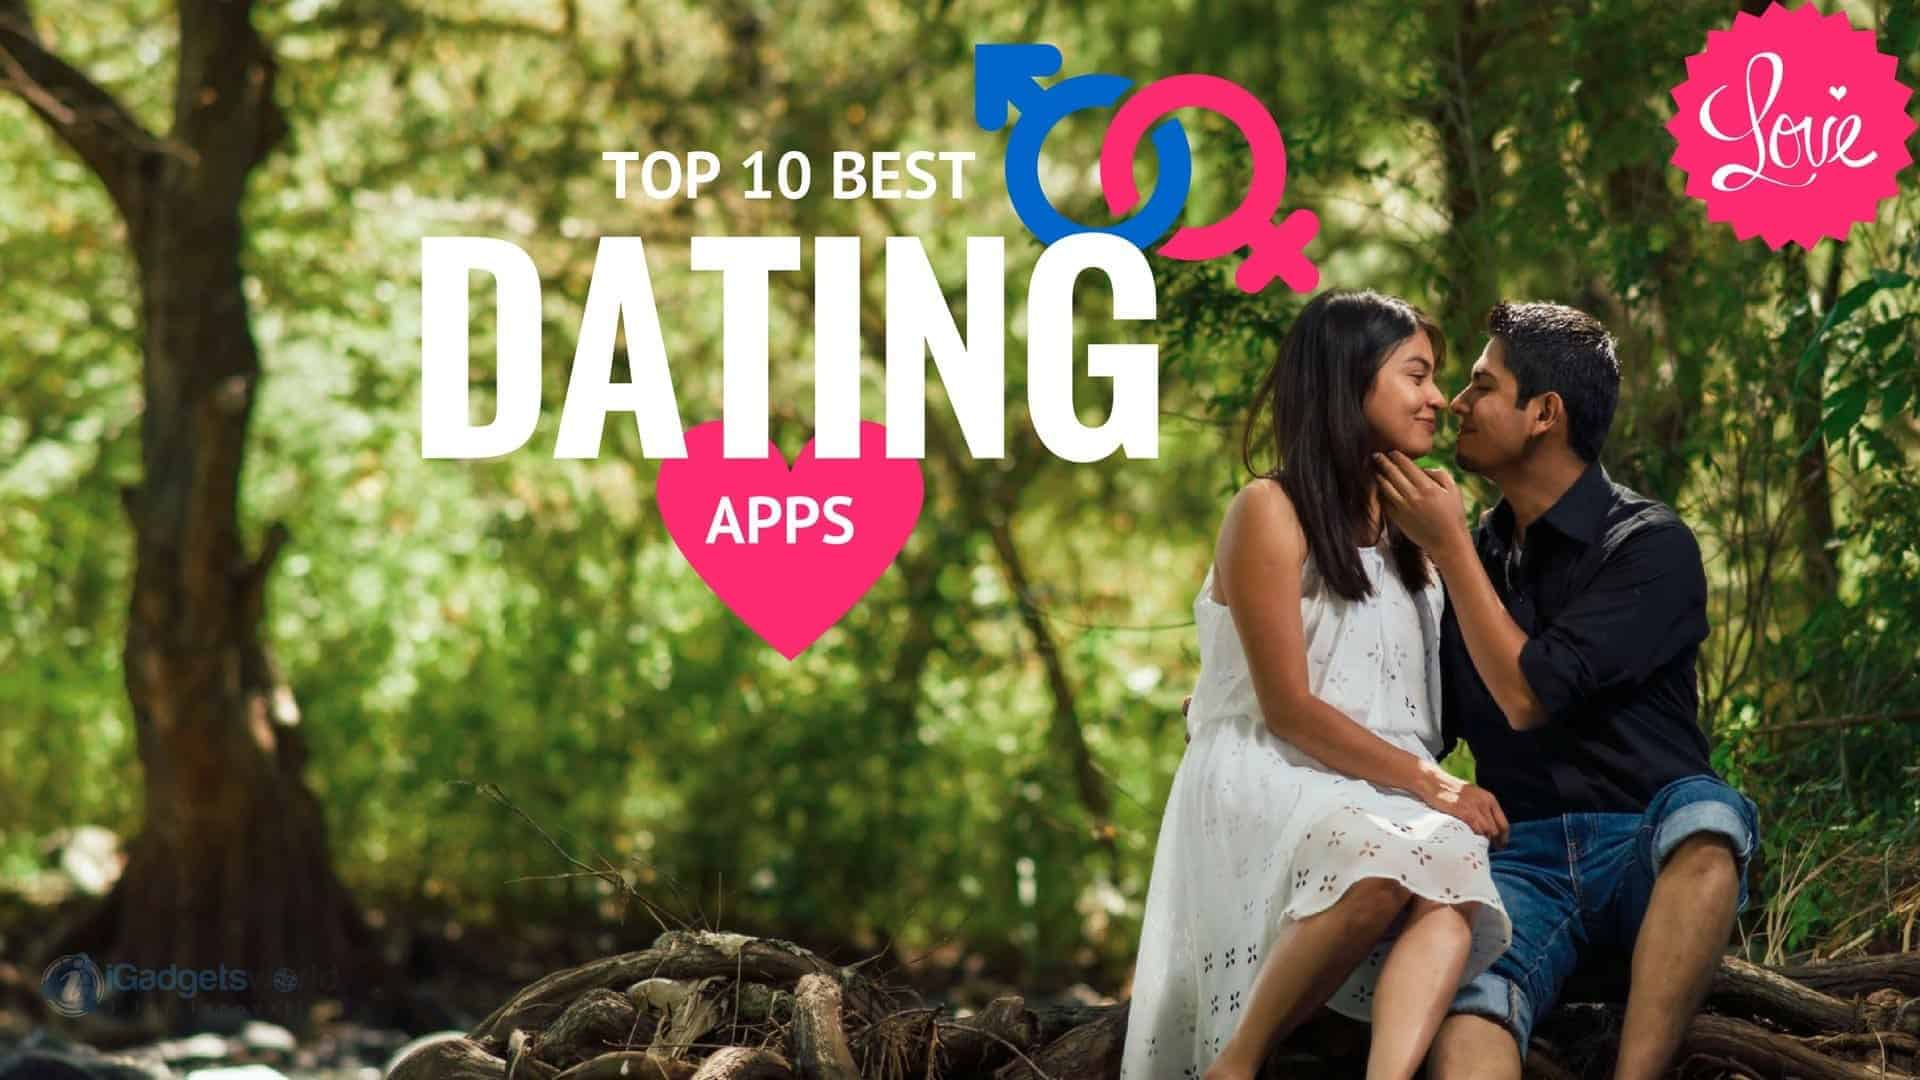 The best dating apps in ireland